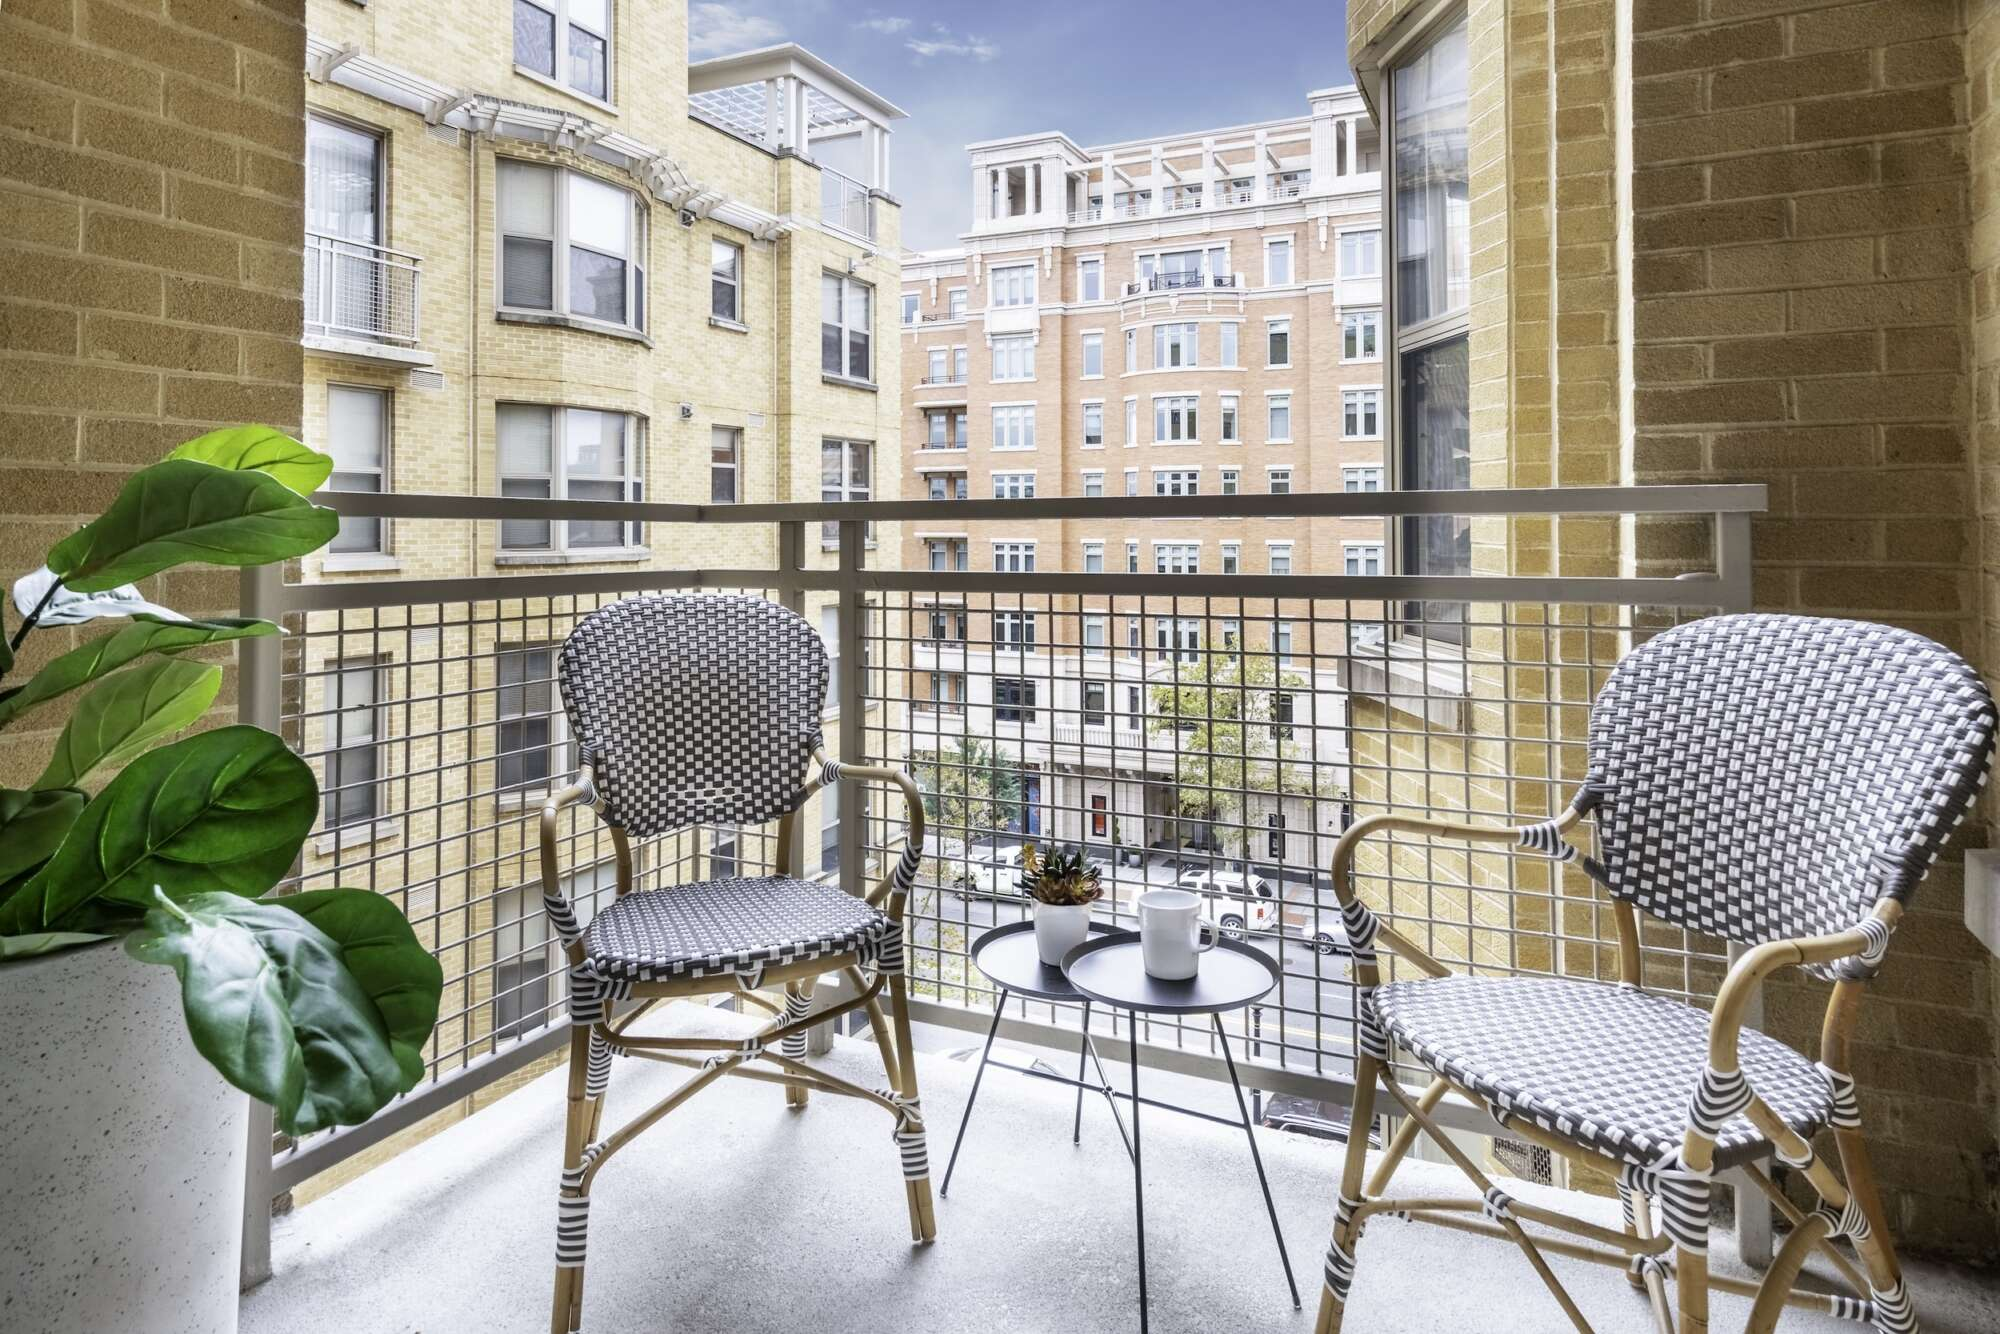 Patio of a model apartment at The Ellington with two chair and a blue sky in the distance